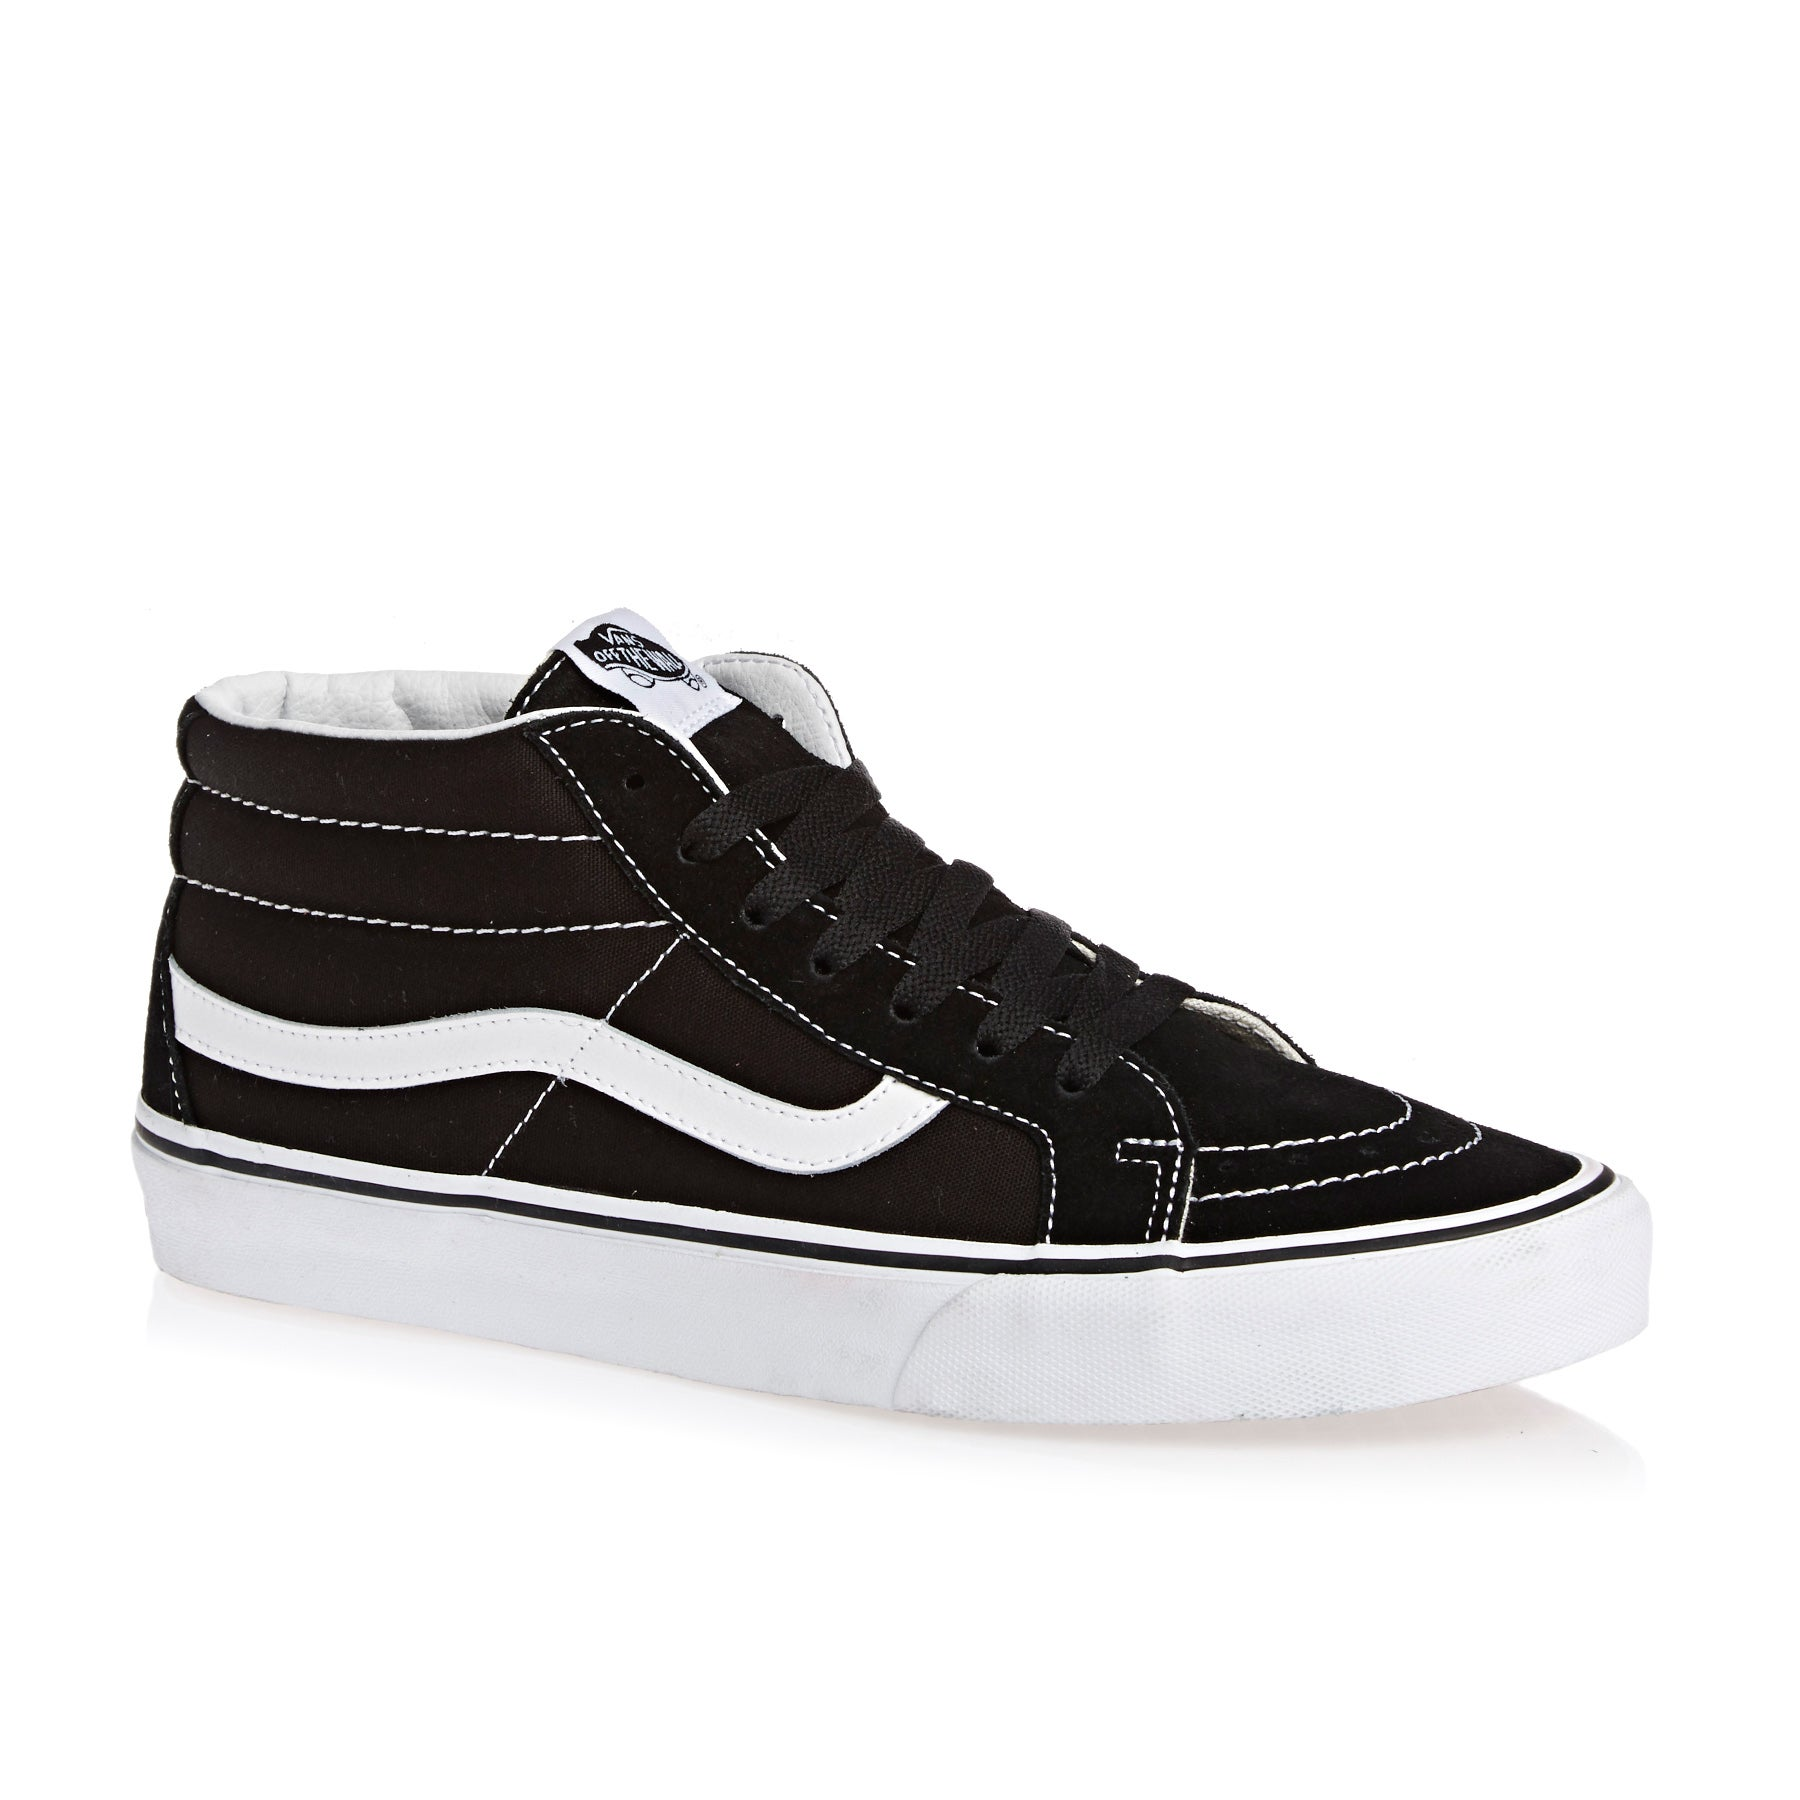 Vans SK8 Mid Reissue Shoes - Black True White